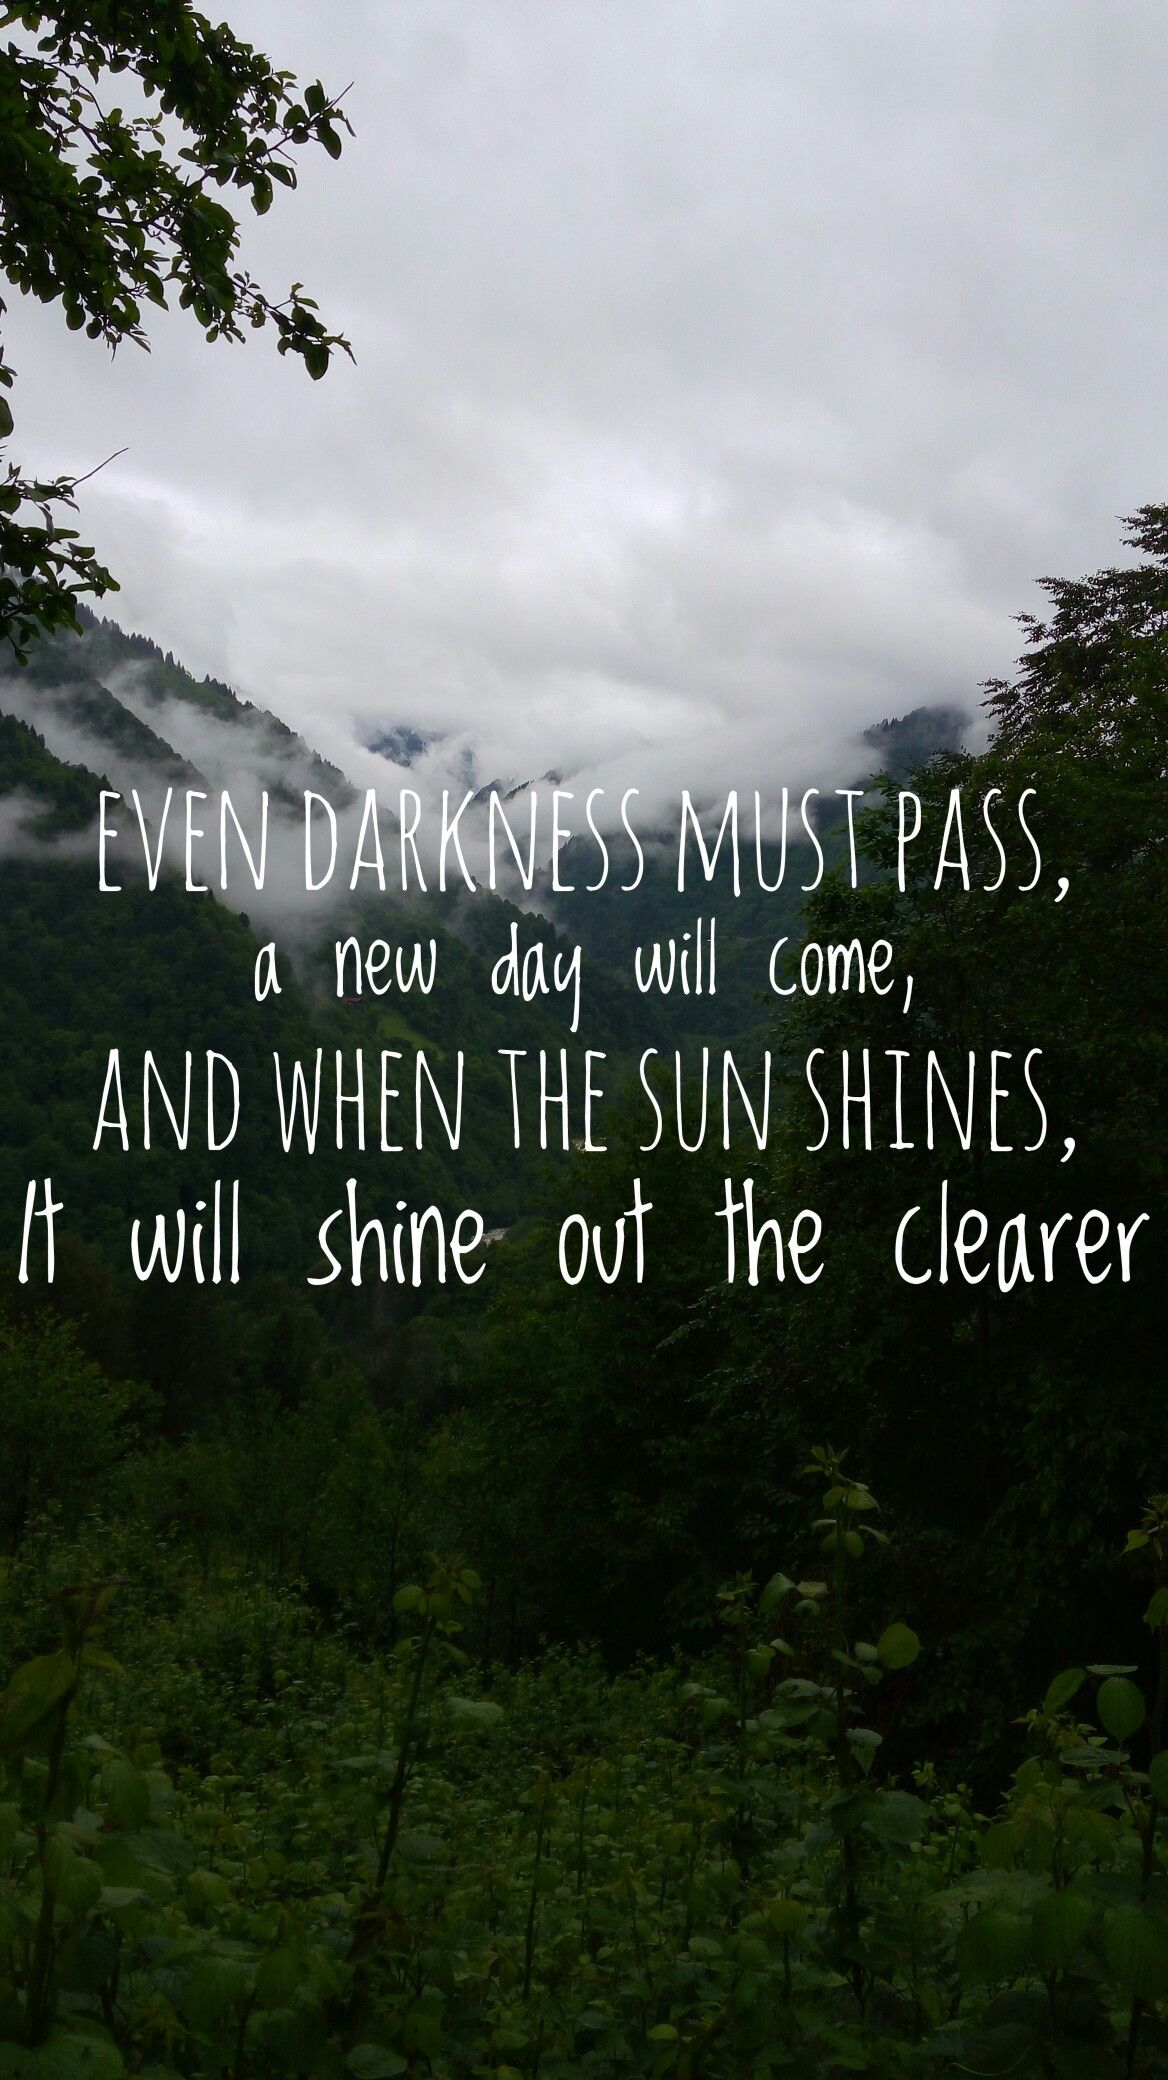 Even darkness must pass. A new day will come, and when the sun shines it will shine out the clearer